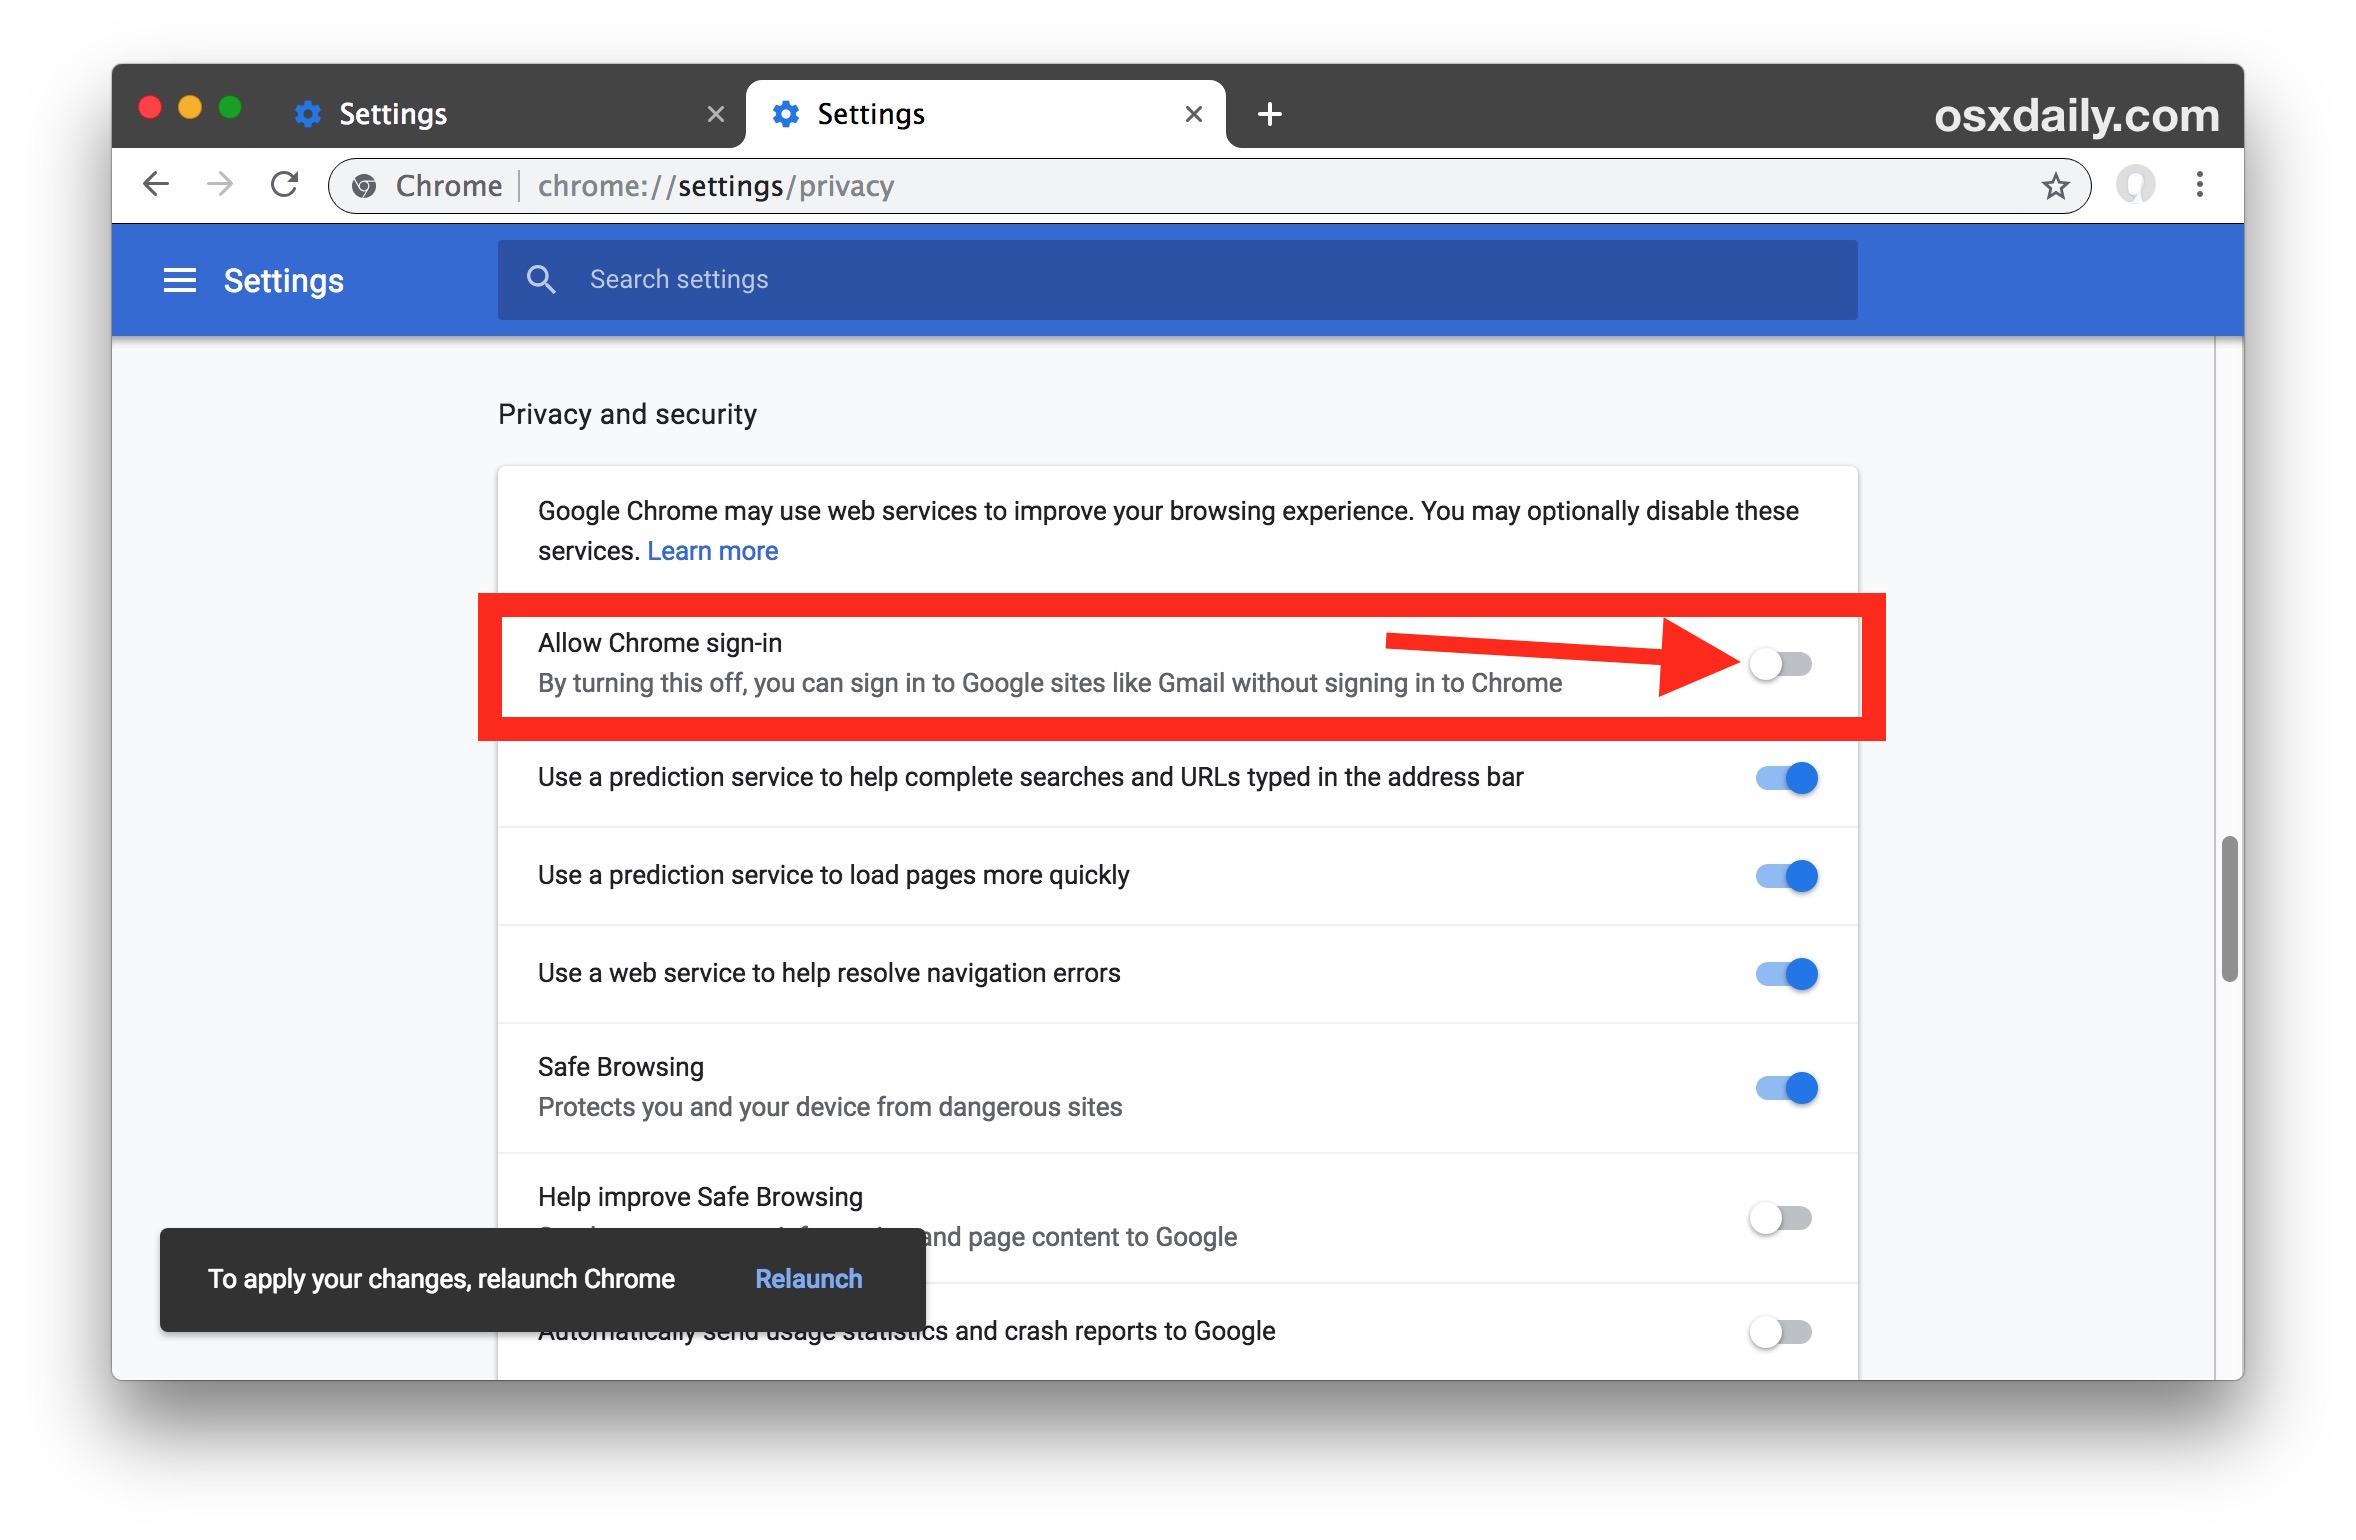 How to disable Chrome sign-in to Google